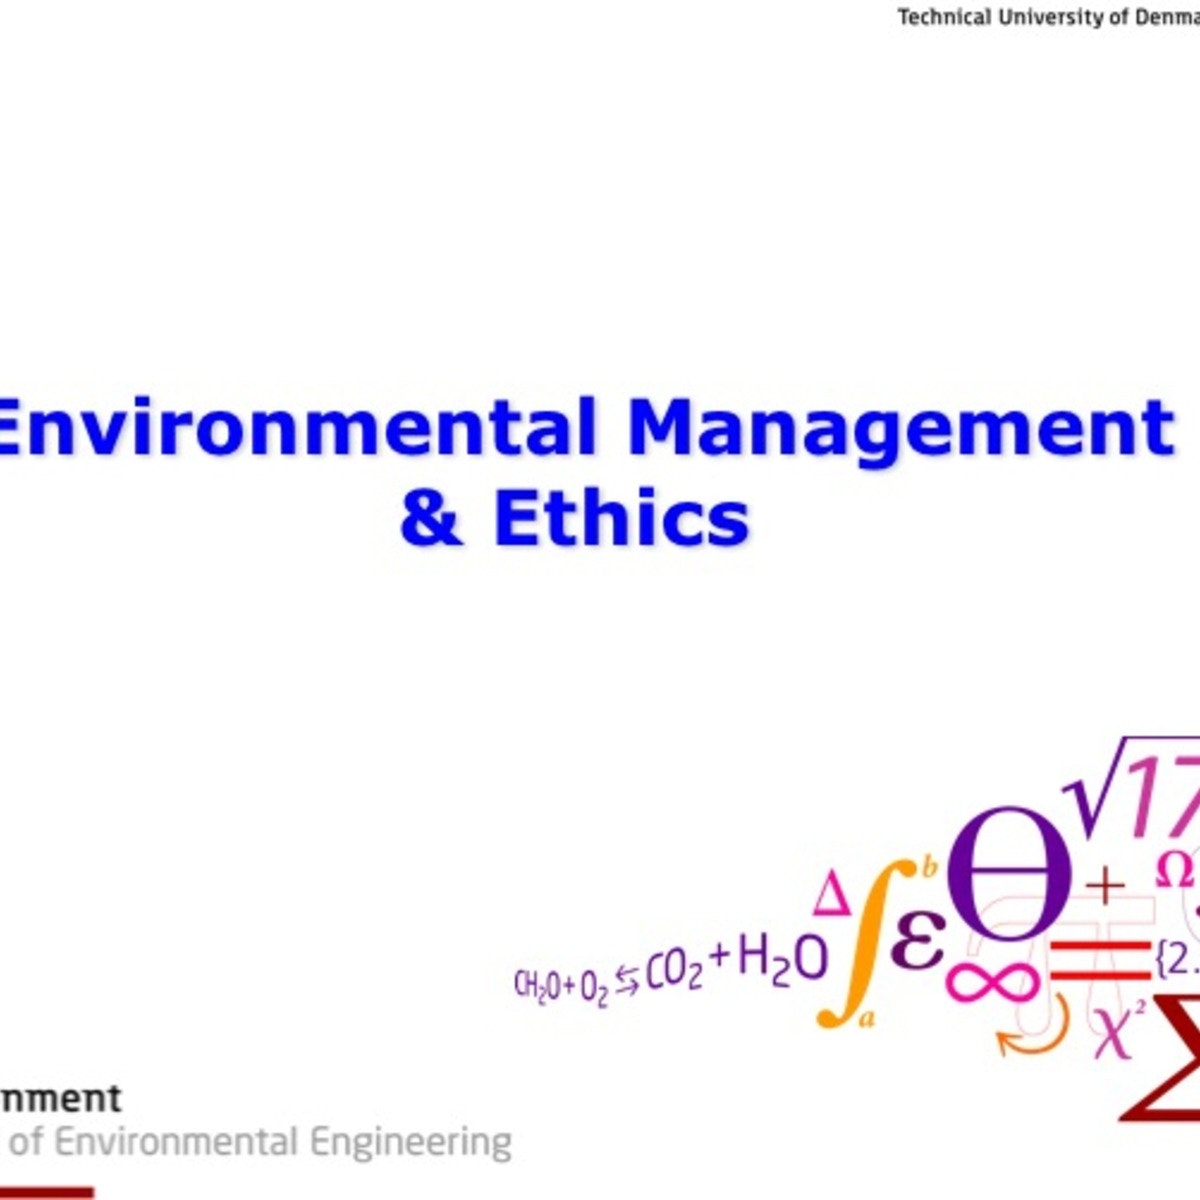 environmental management Environmental management, at the school of environment, aims to transform human behaviour to achieve society's goals for the environment.